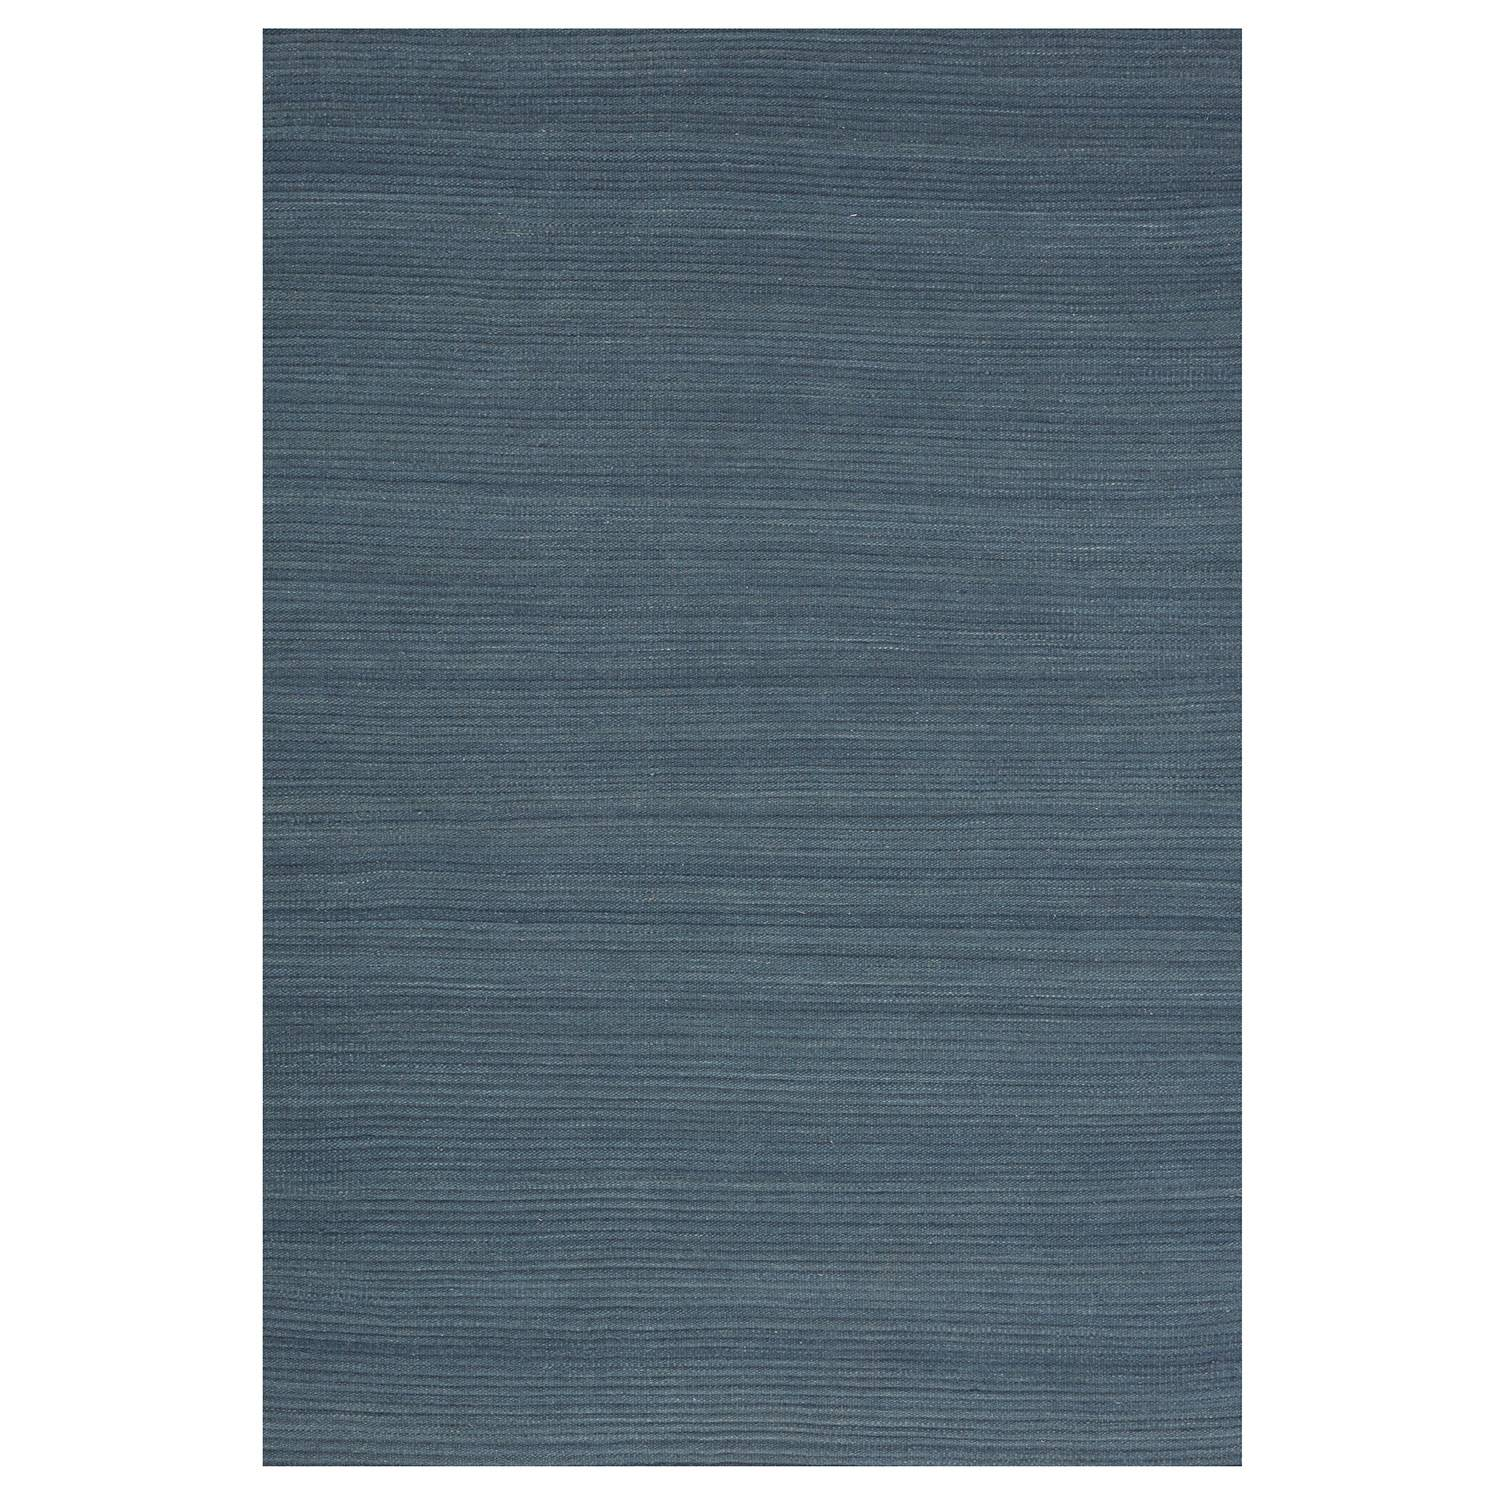 Linie Design Livello Matto 200x300cm, Navy